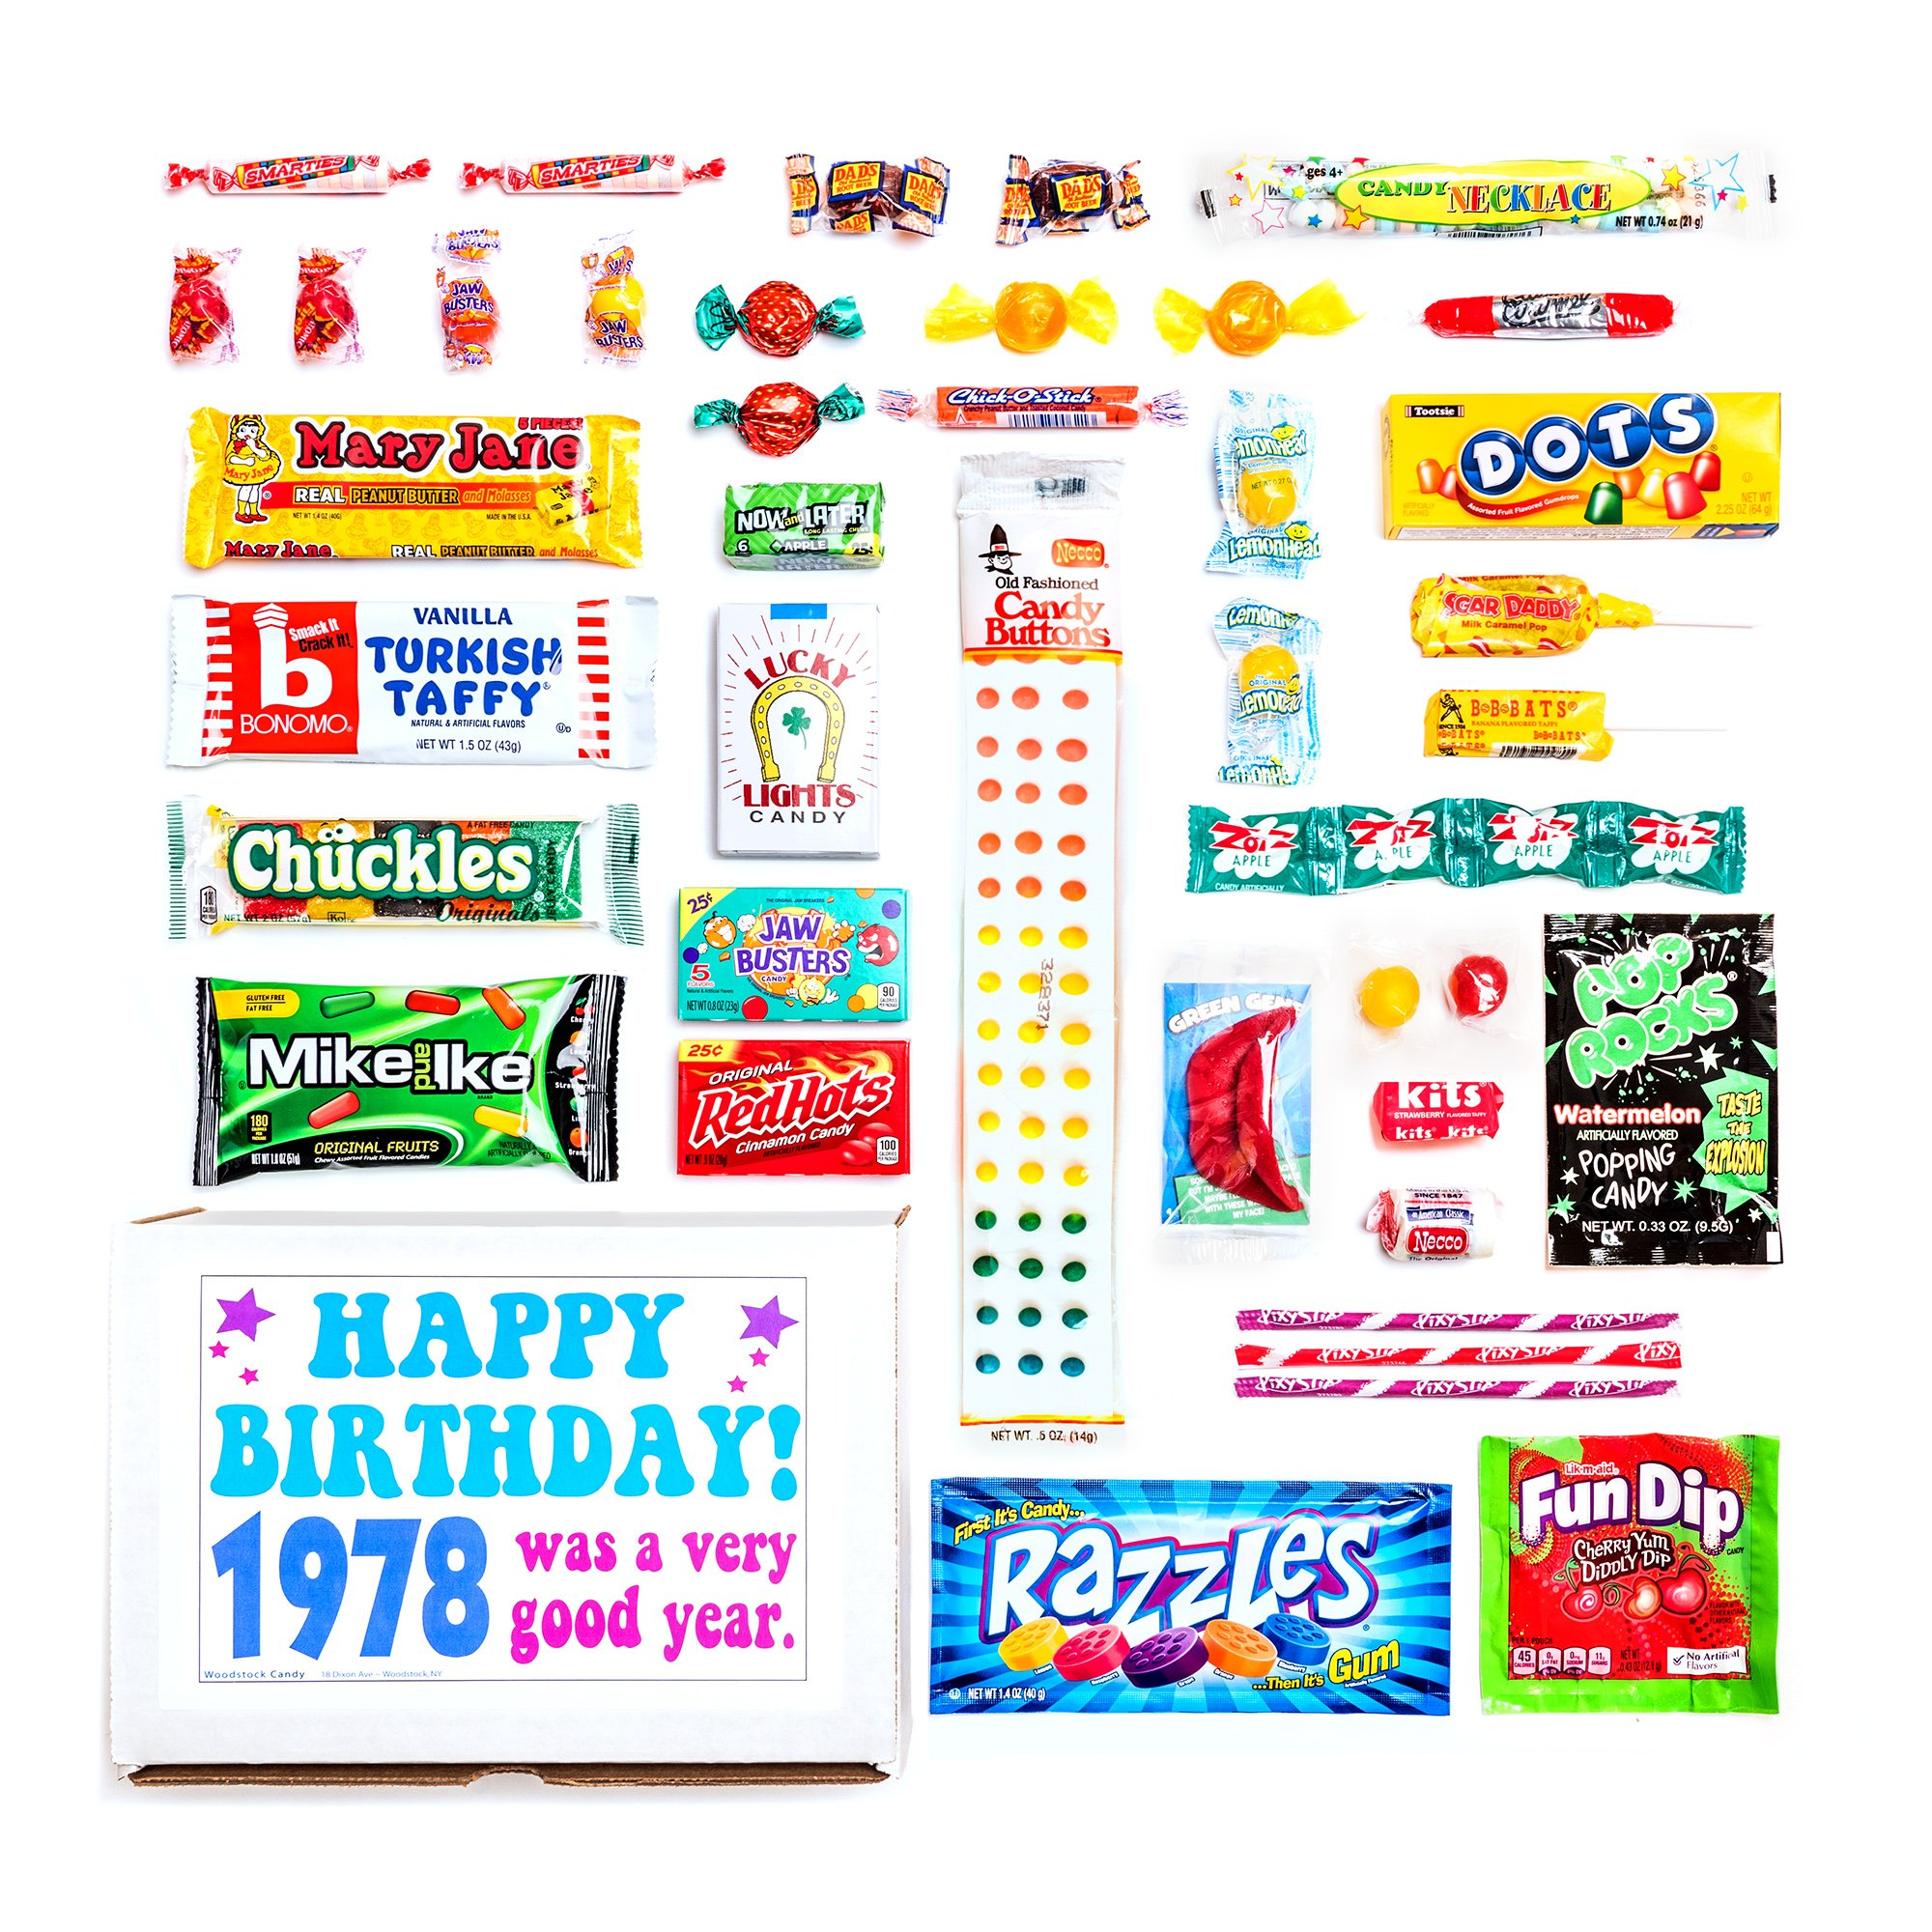 Woodstock Candy 1978 40th Birthday Gift Box Nostalgic Retro Assortment From Childhood For 40 Year Old Man Or Woman Born Jr Chocolate